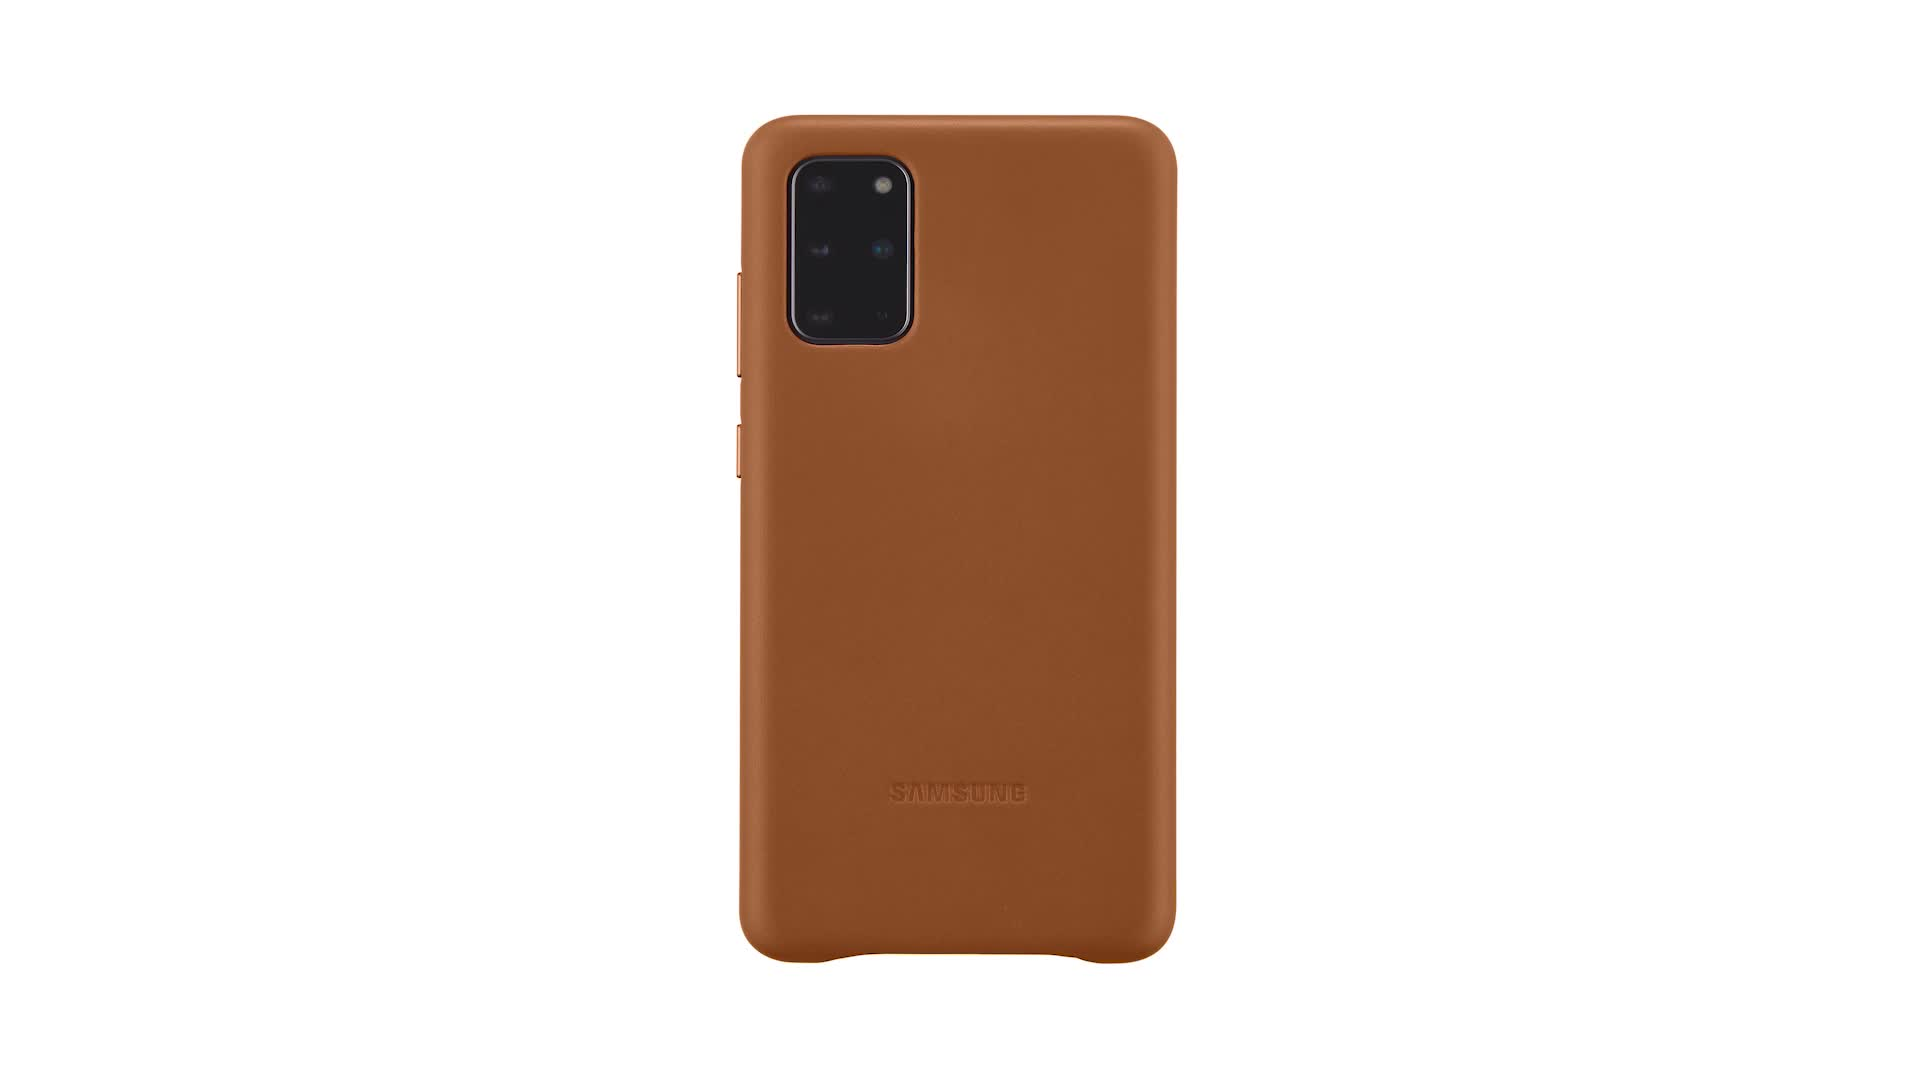 Samsung Leather Cover Ef Vg985 For Galaxy S20 S20 5g Brown Elektronik